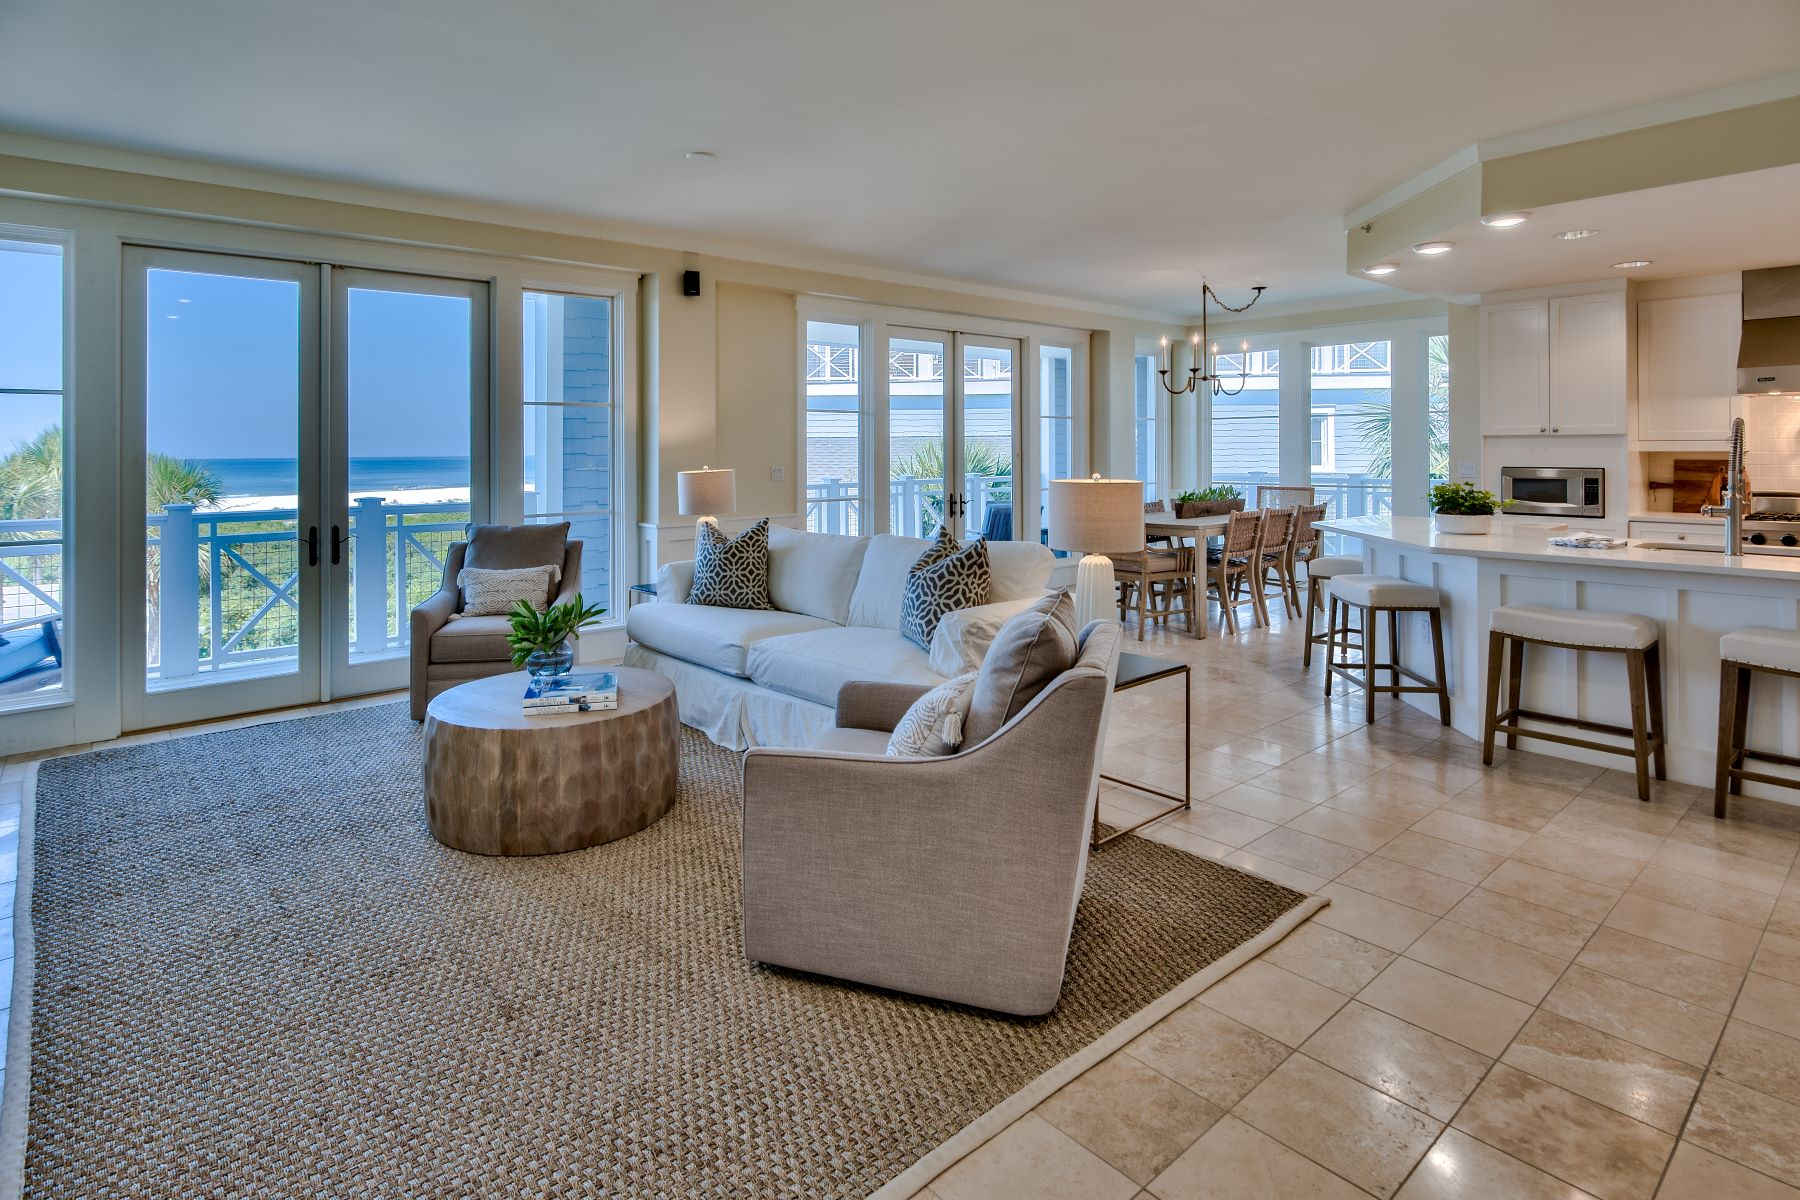 Condominiums for Sale at Three Bedroom Condo in WaterSound Beach with Gulf Views 337 Bridge Lane South B313 Watersound, Florida 32461 United States